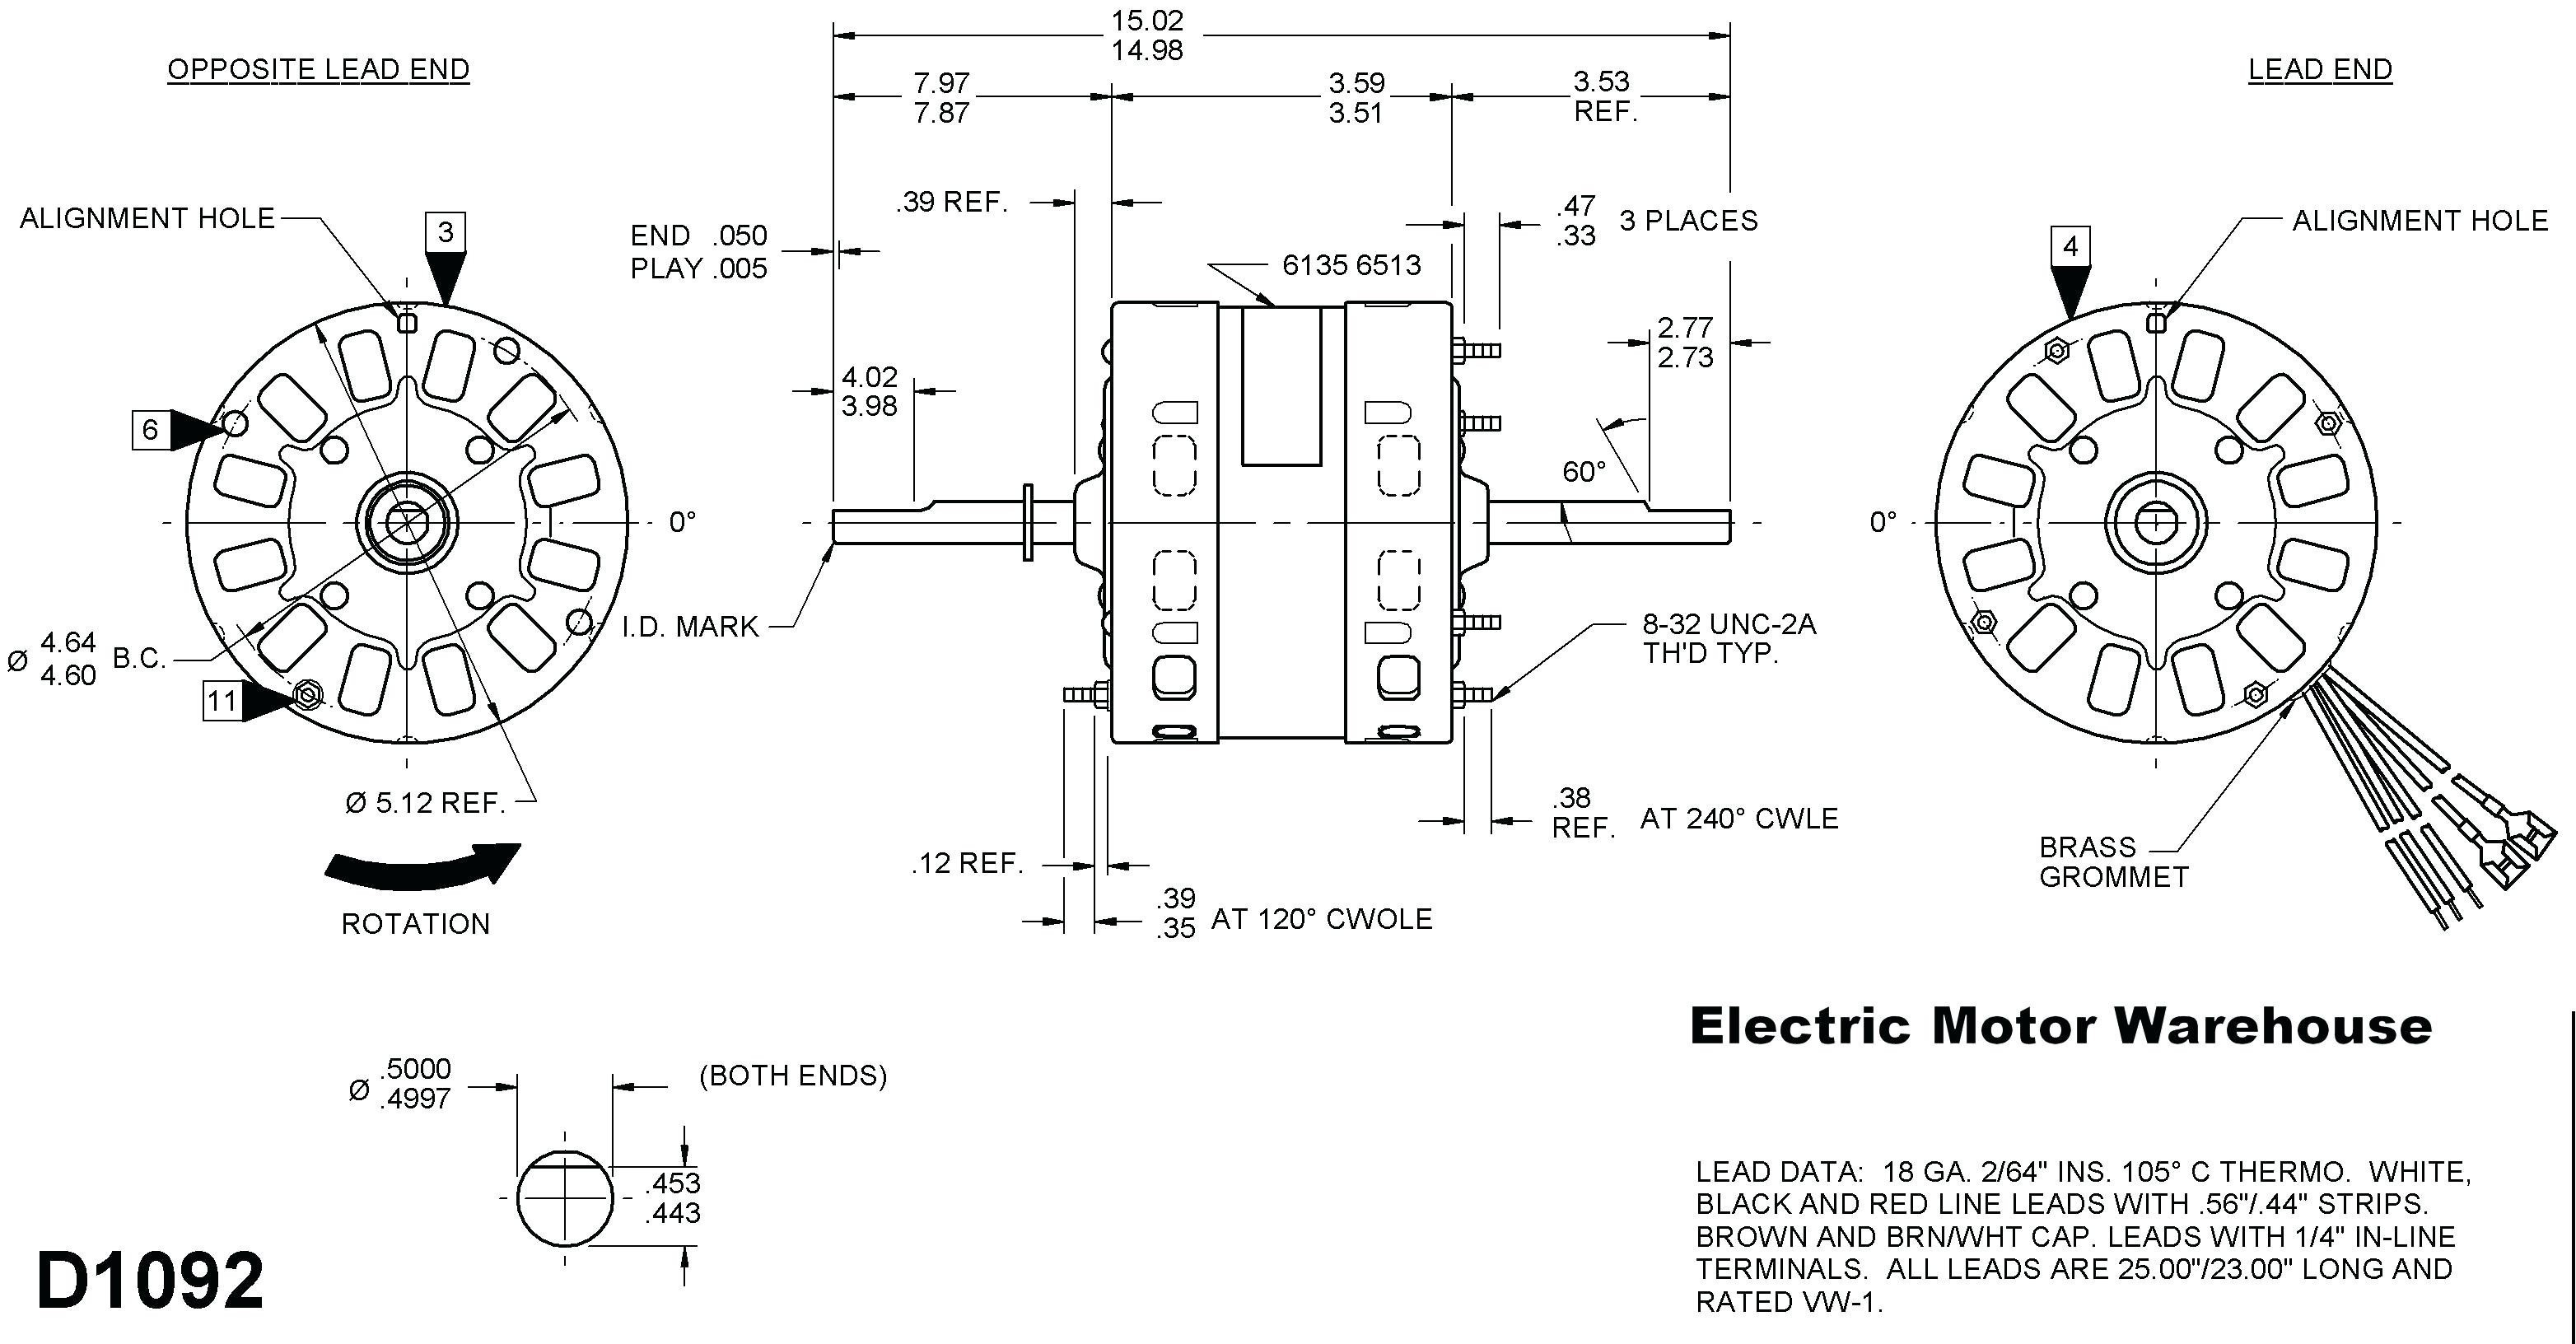 fasco d827 motor wiring diagram toyota celica speaker blower collection